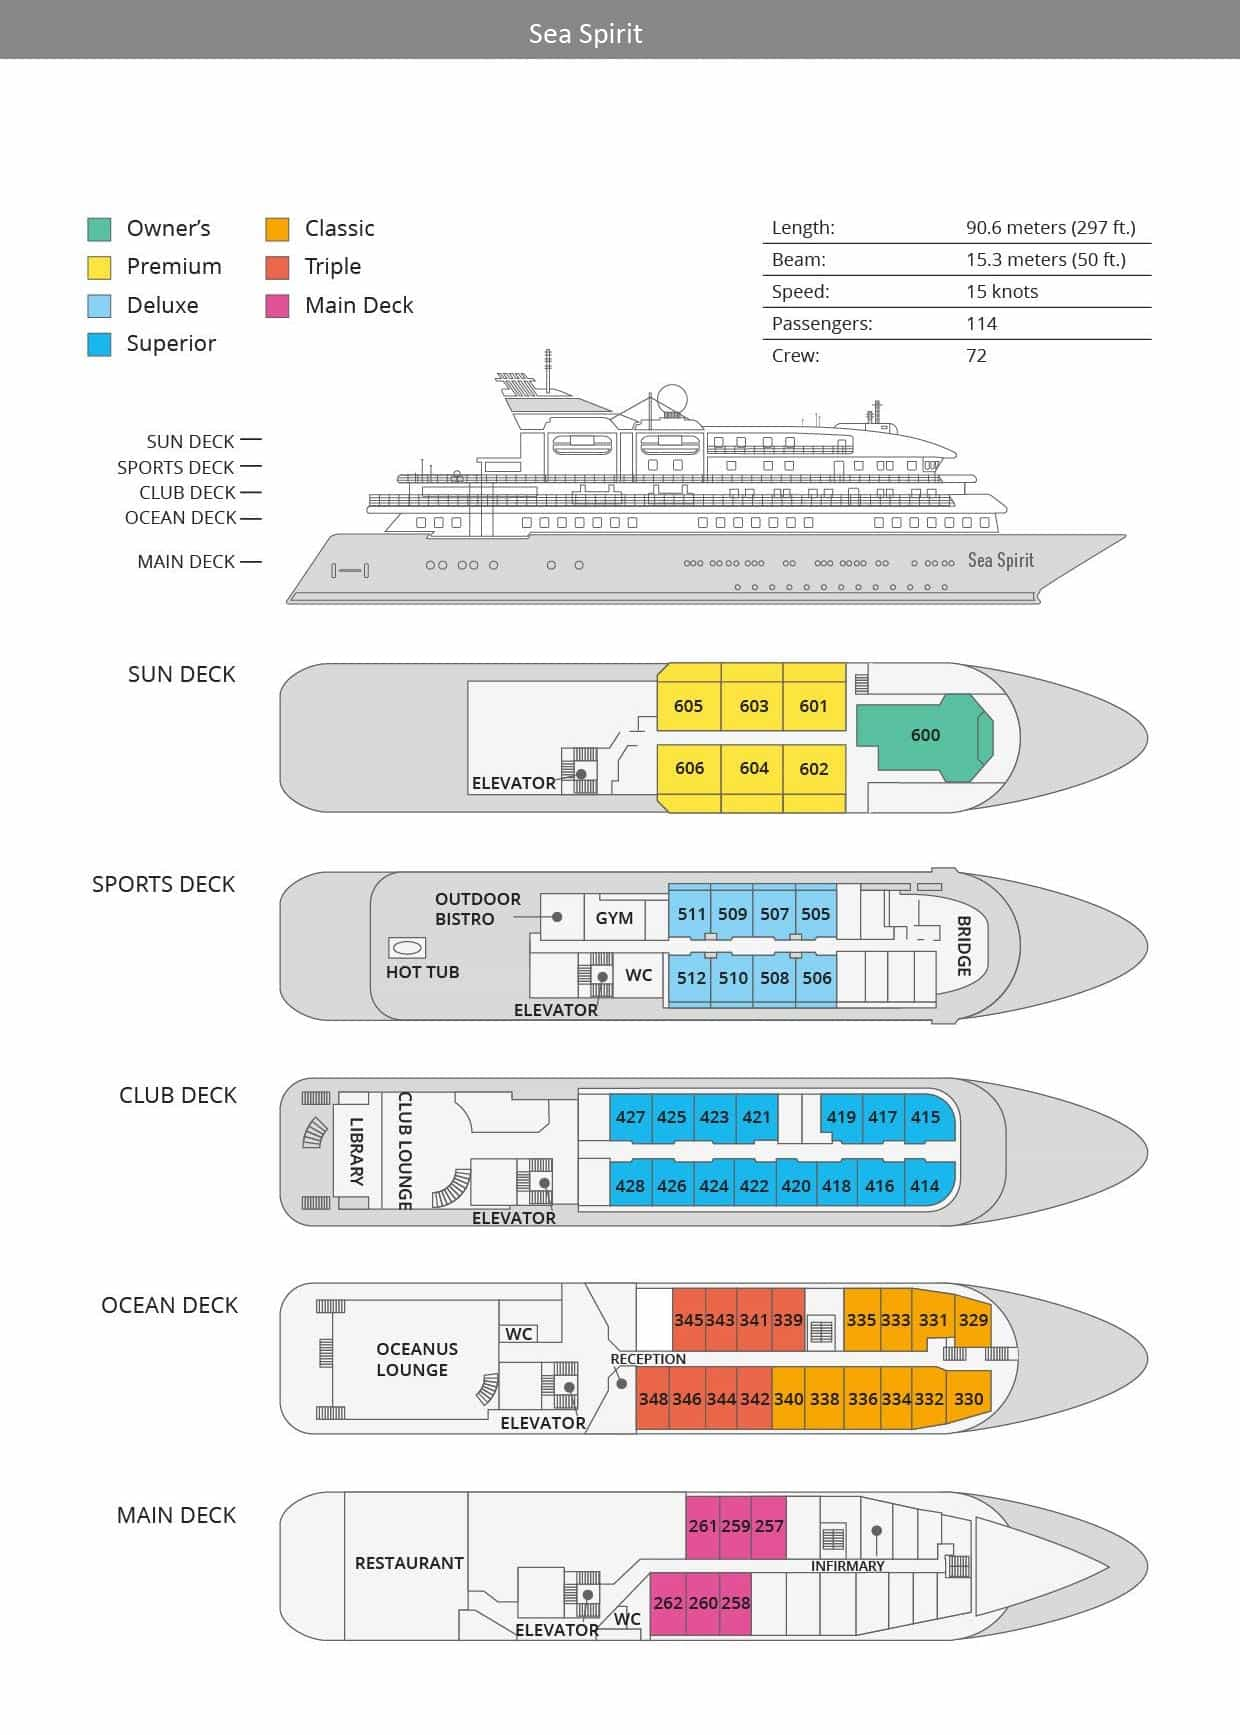 Sea Spirit Deck Plan